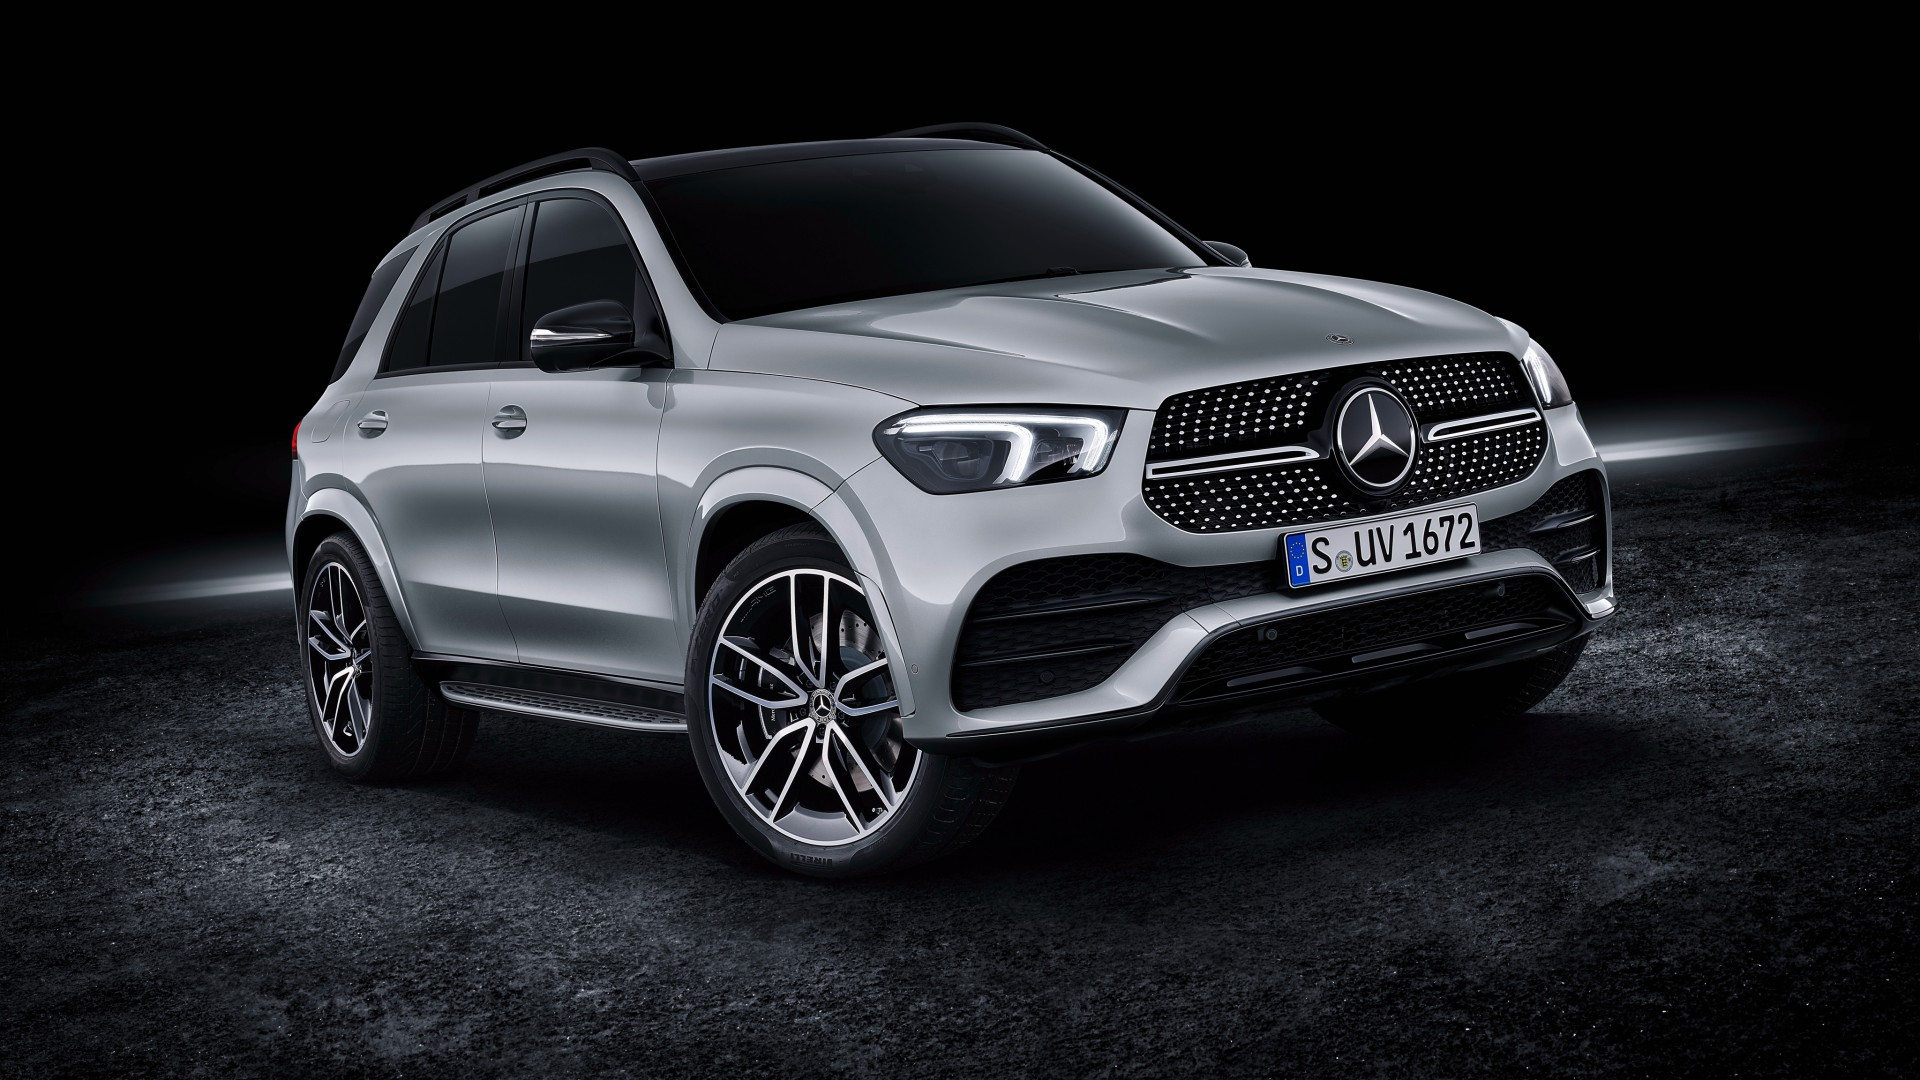 Mercedes-Benz GLE 450 4MATIC AMG Line 2019 4K Wallpaper ...